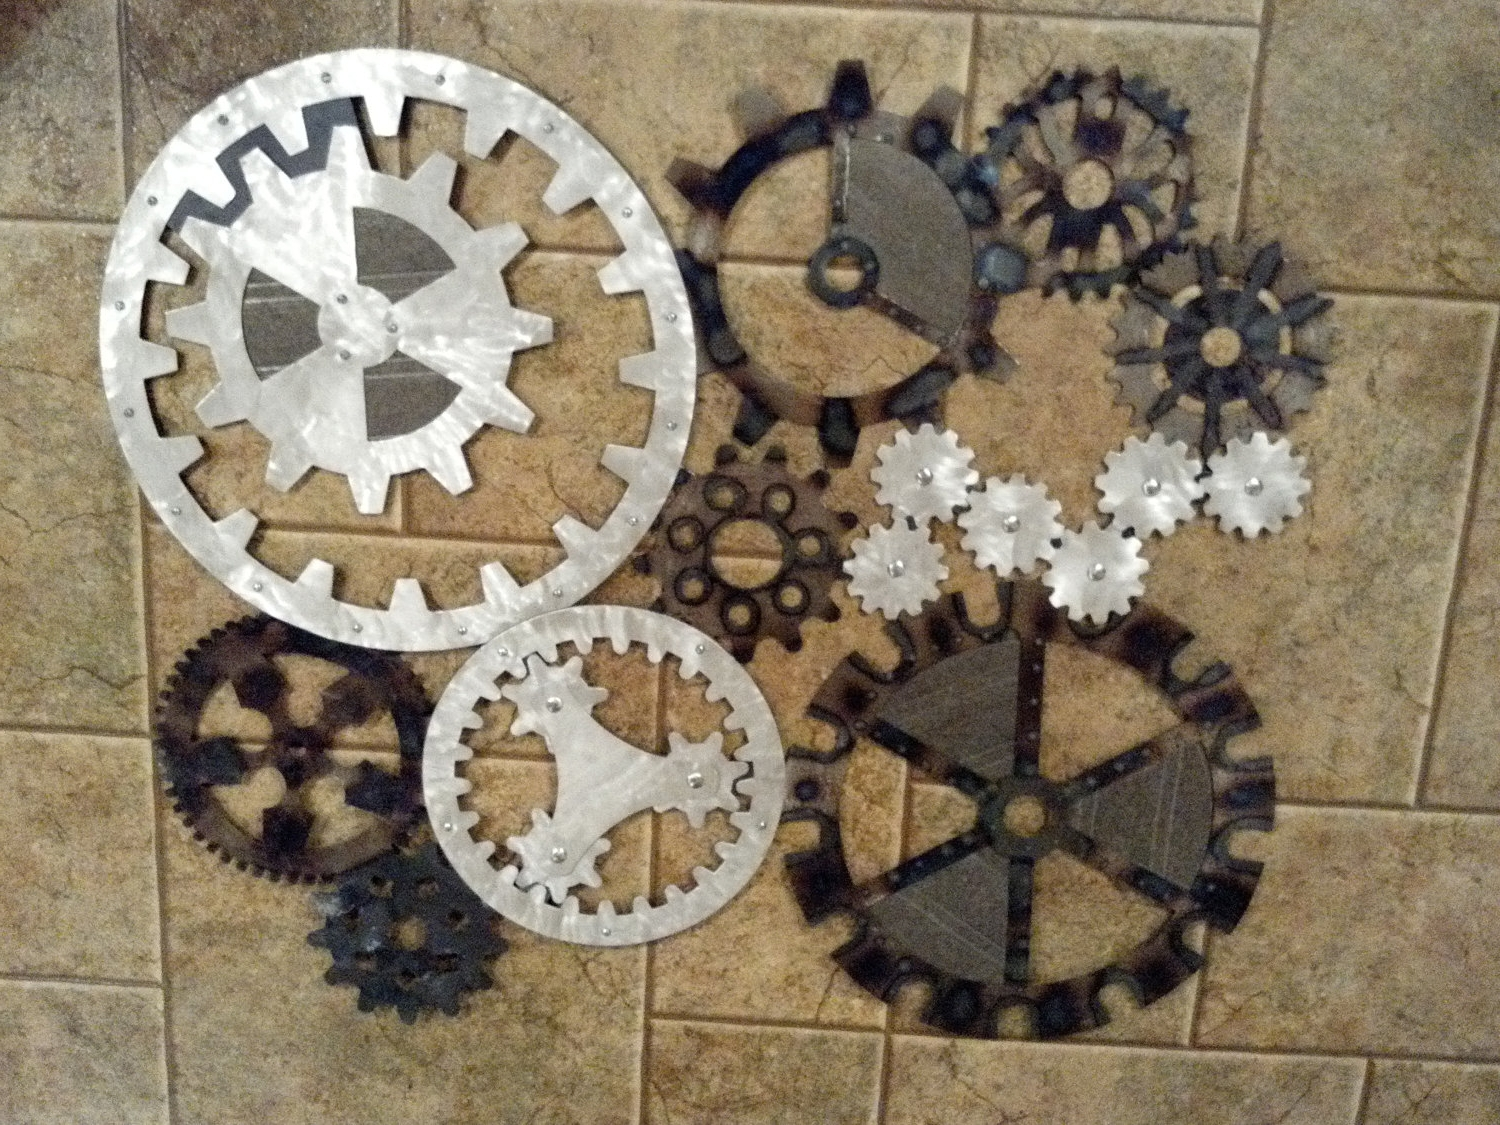 Well Liked Gears Art Industrial Steampunk Wall Decor Made Darkhorsegarage New Inside Steampunk Wall Art (View 14 of 15)